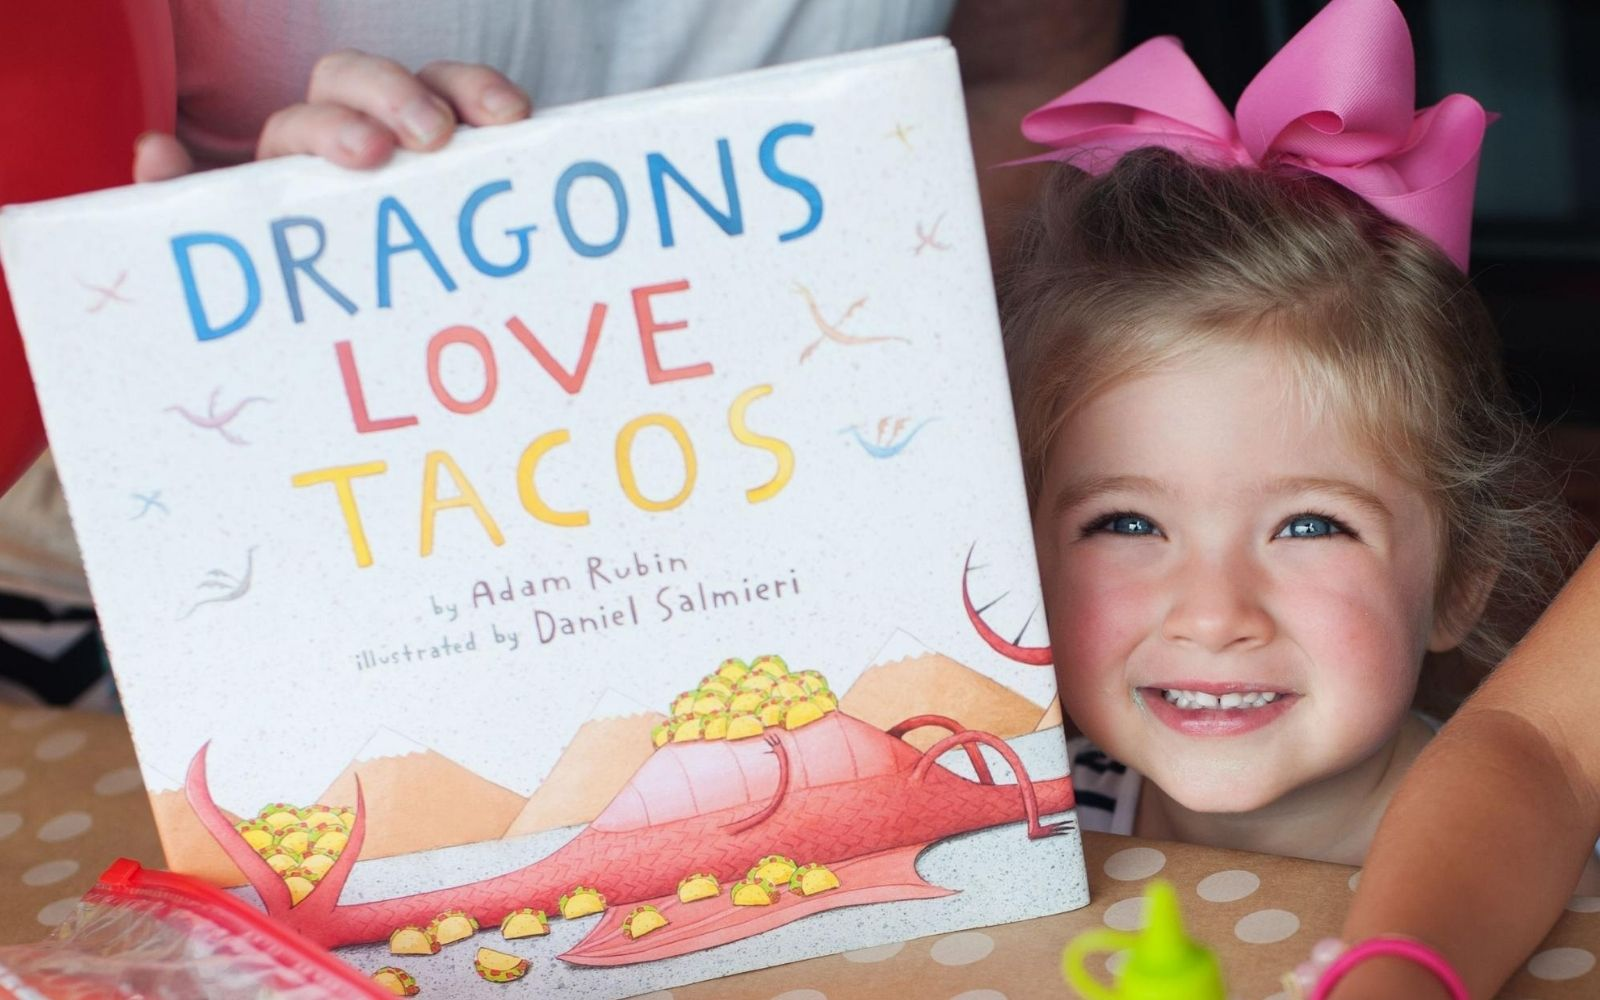 Dragons Live Tacos - Copyright @CoolProgeny